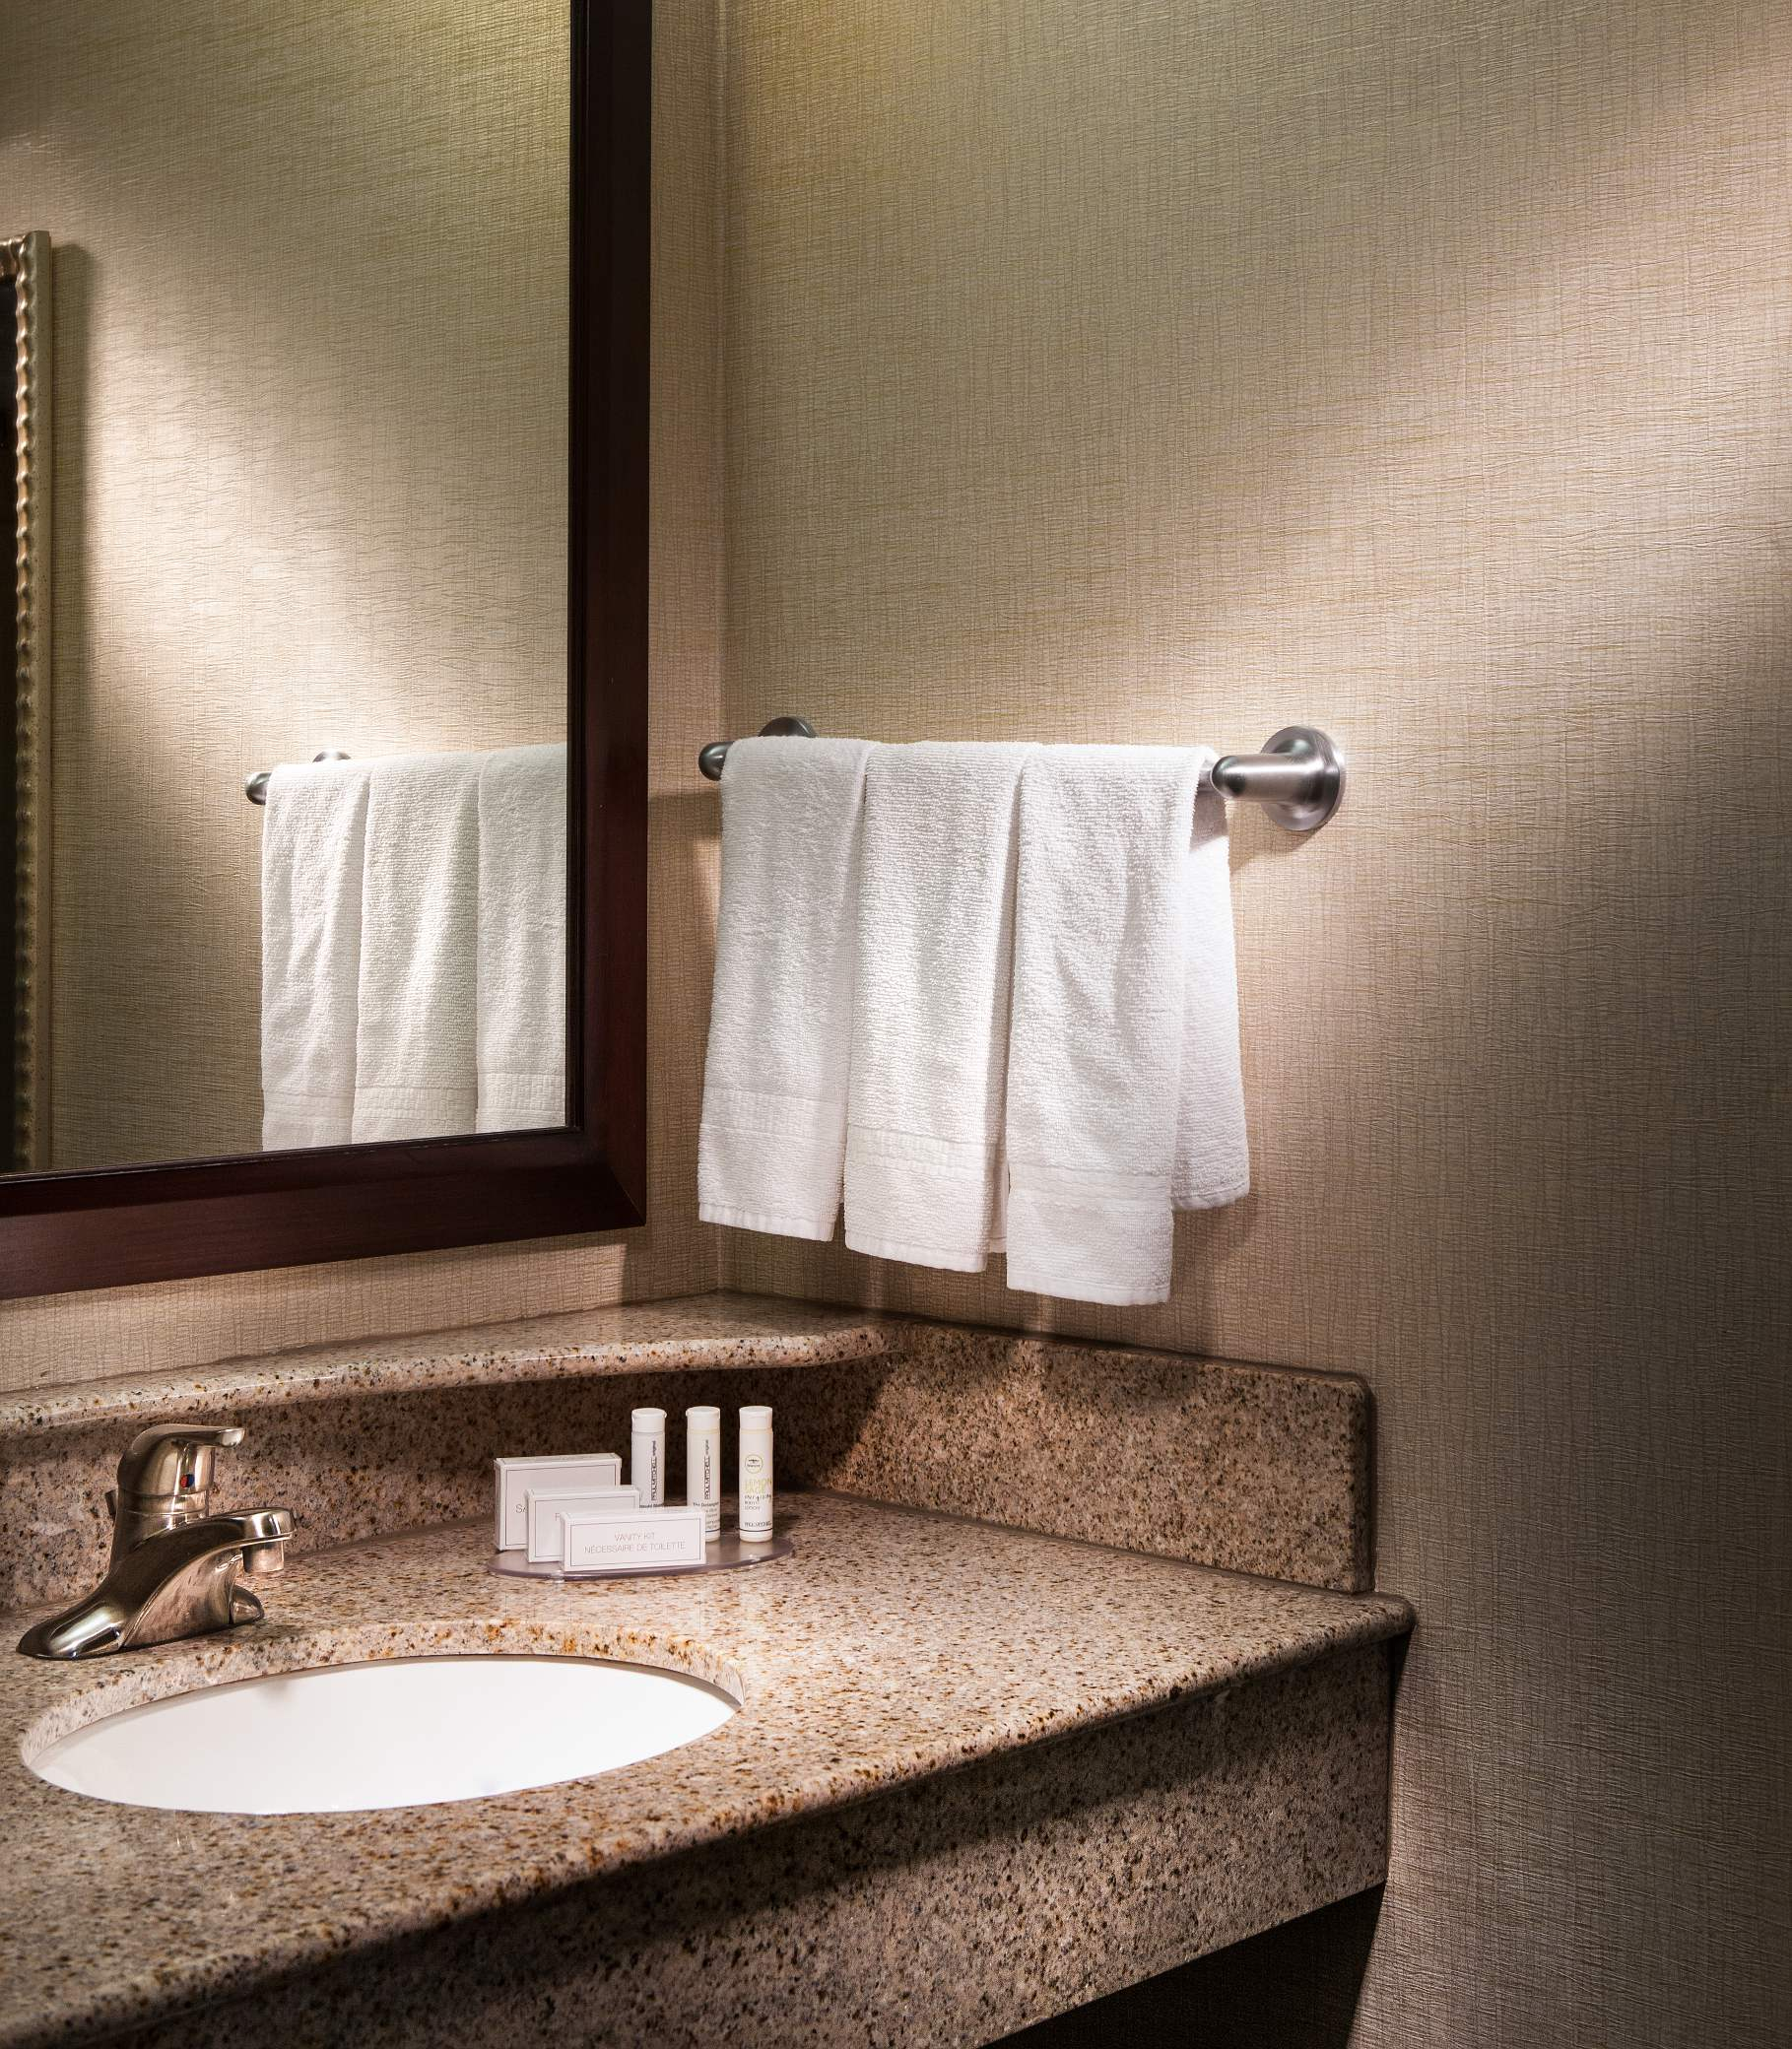 SpringHill Suites by Marriott Dallas DFW Airport North/Grapevine image 8